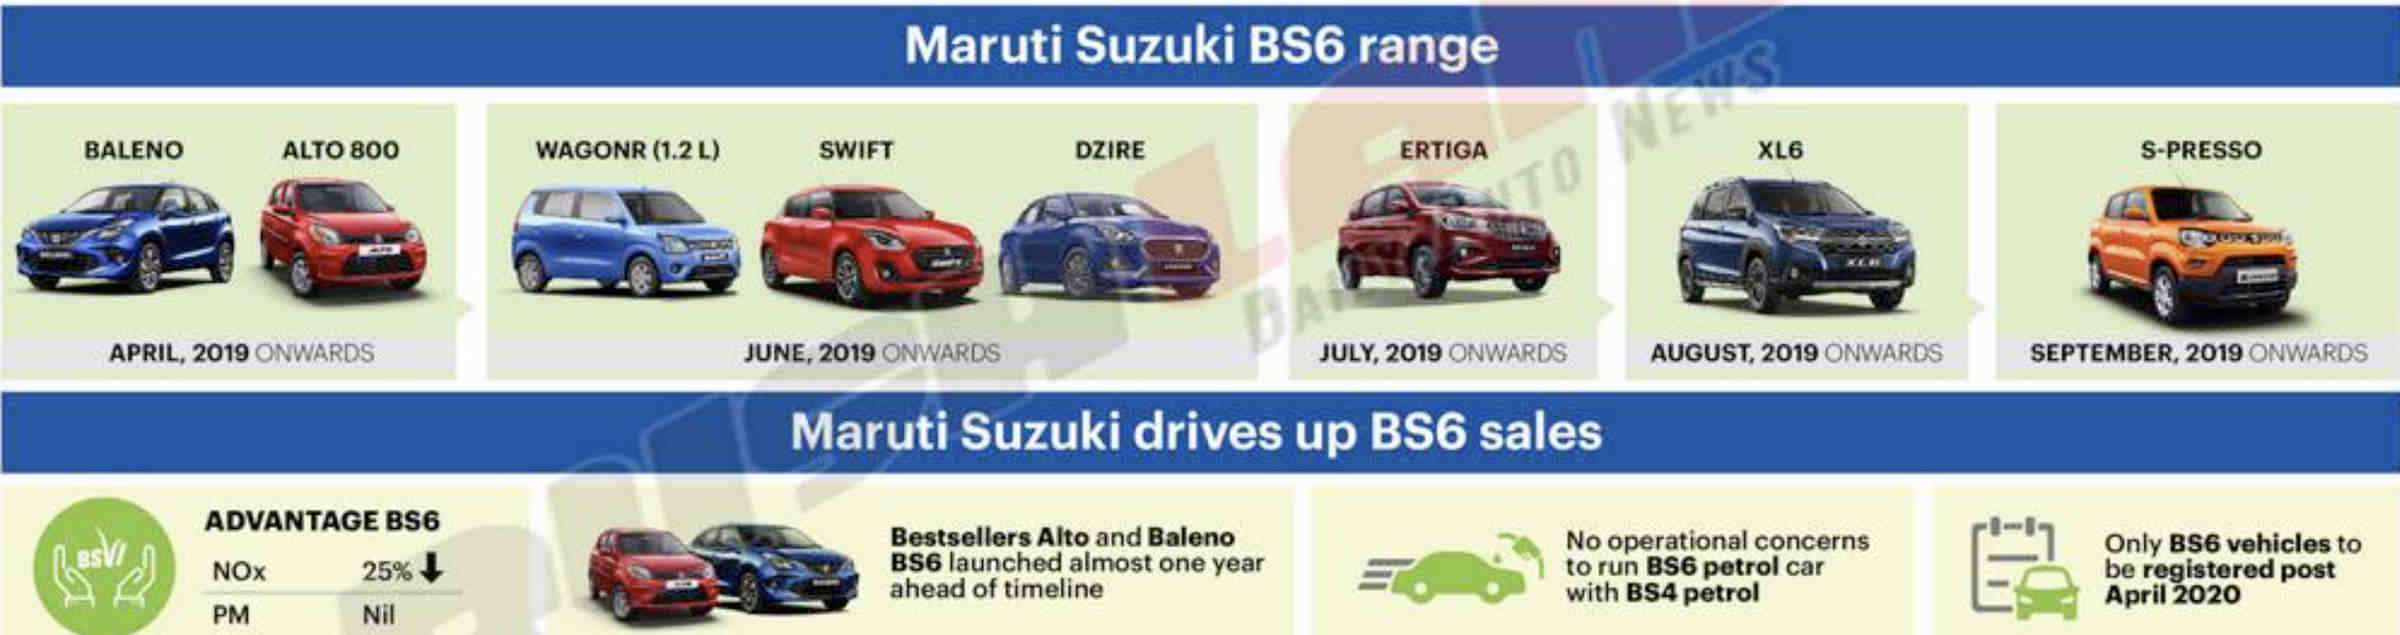 Maruti BS6 cars list